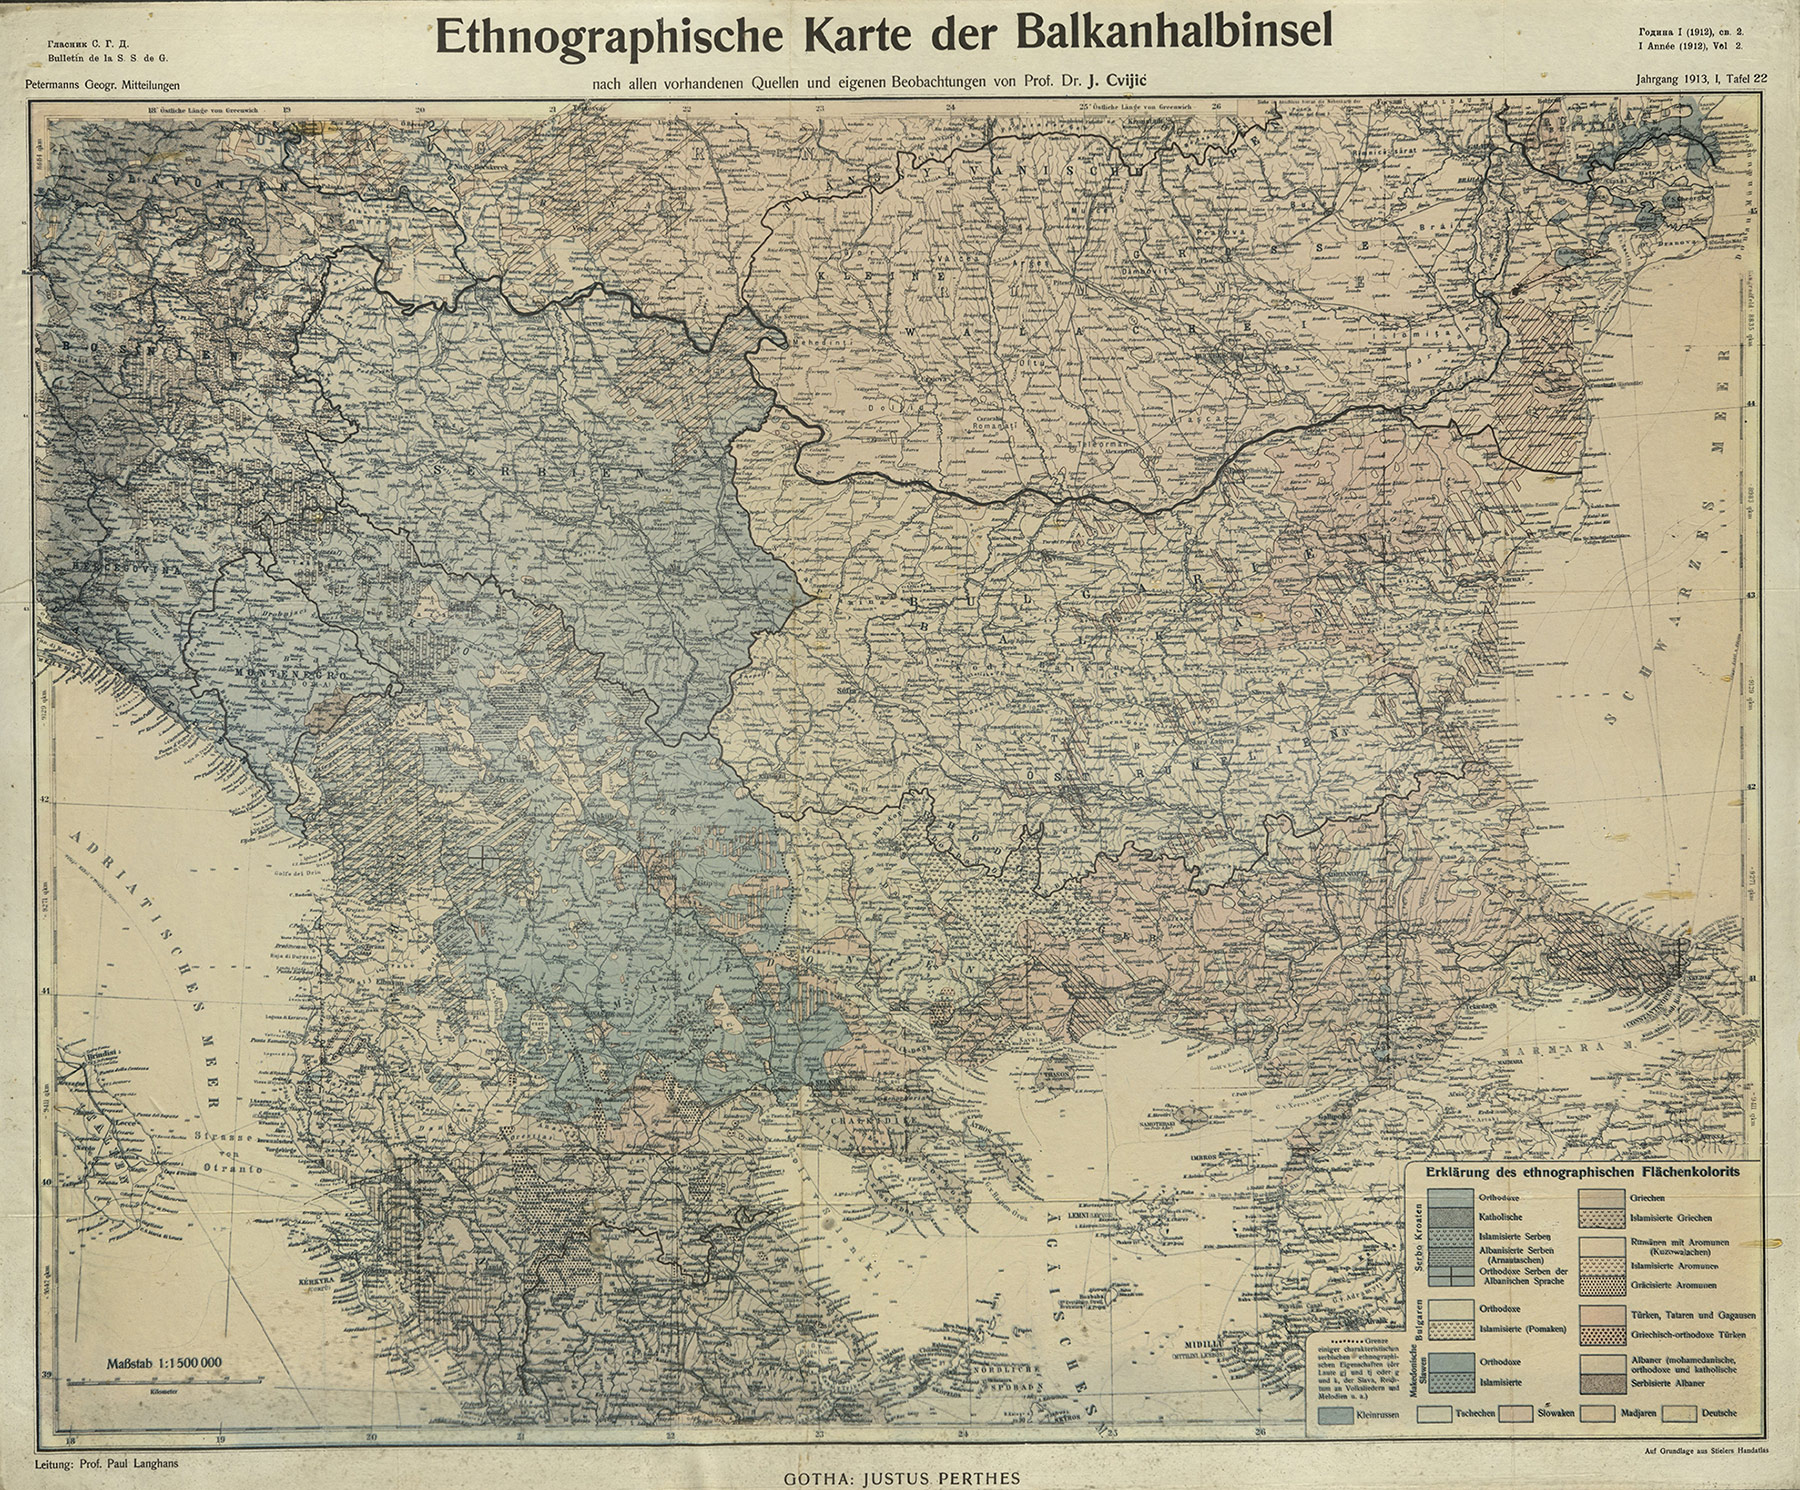 An Ethnographic Map of the Balkan Peninsula